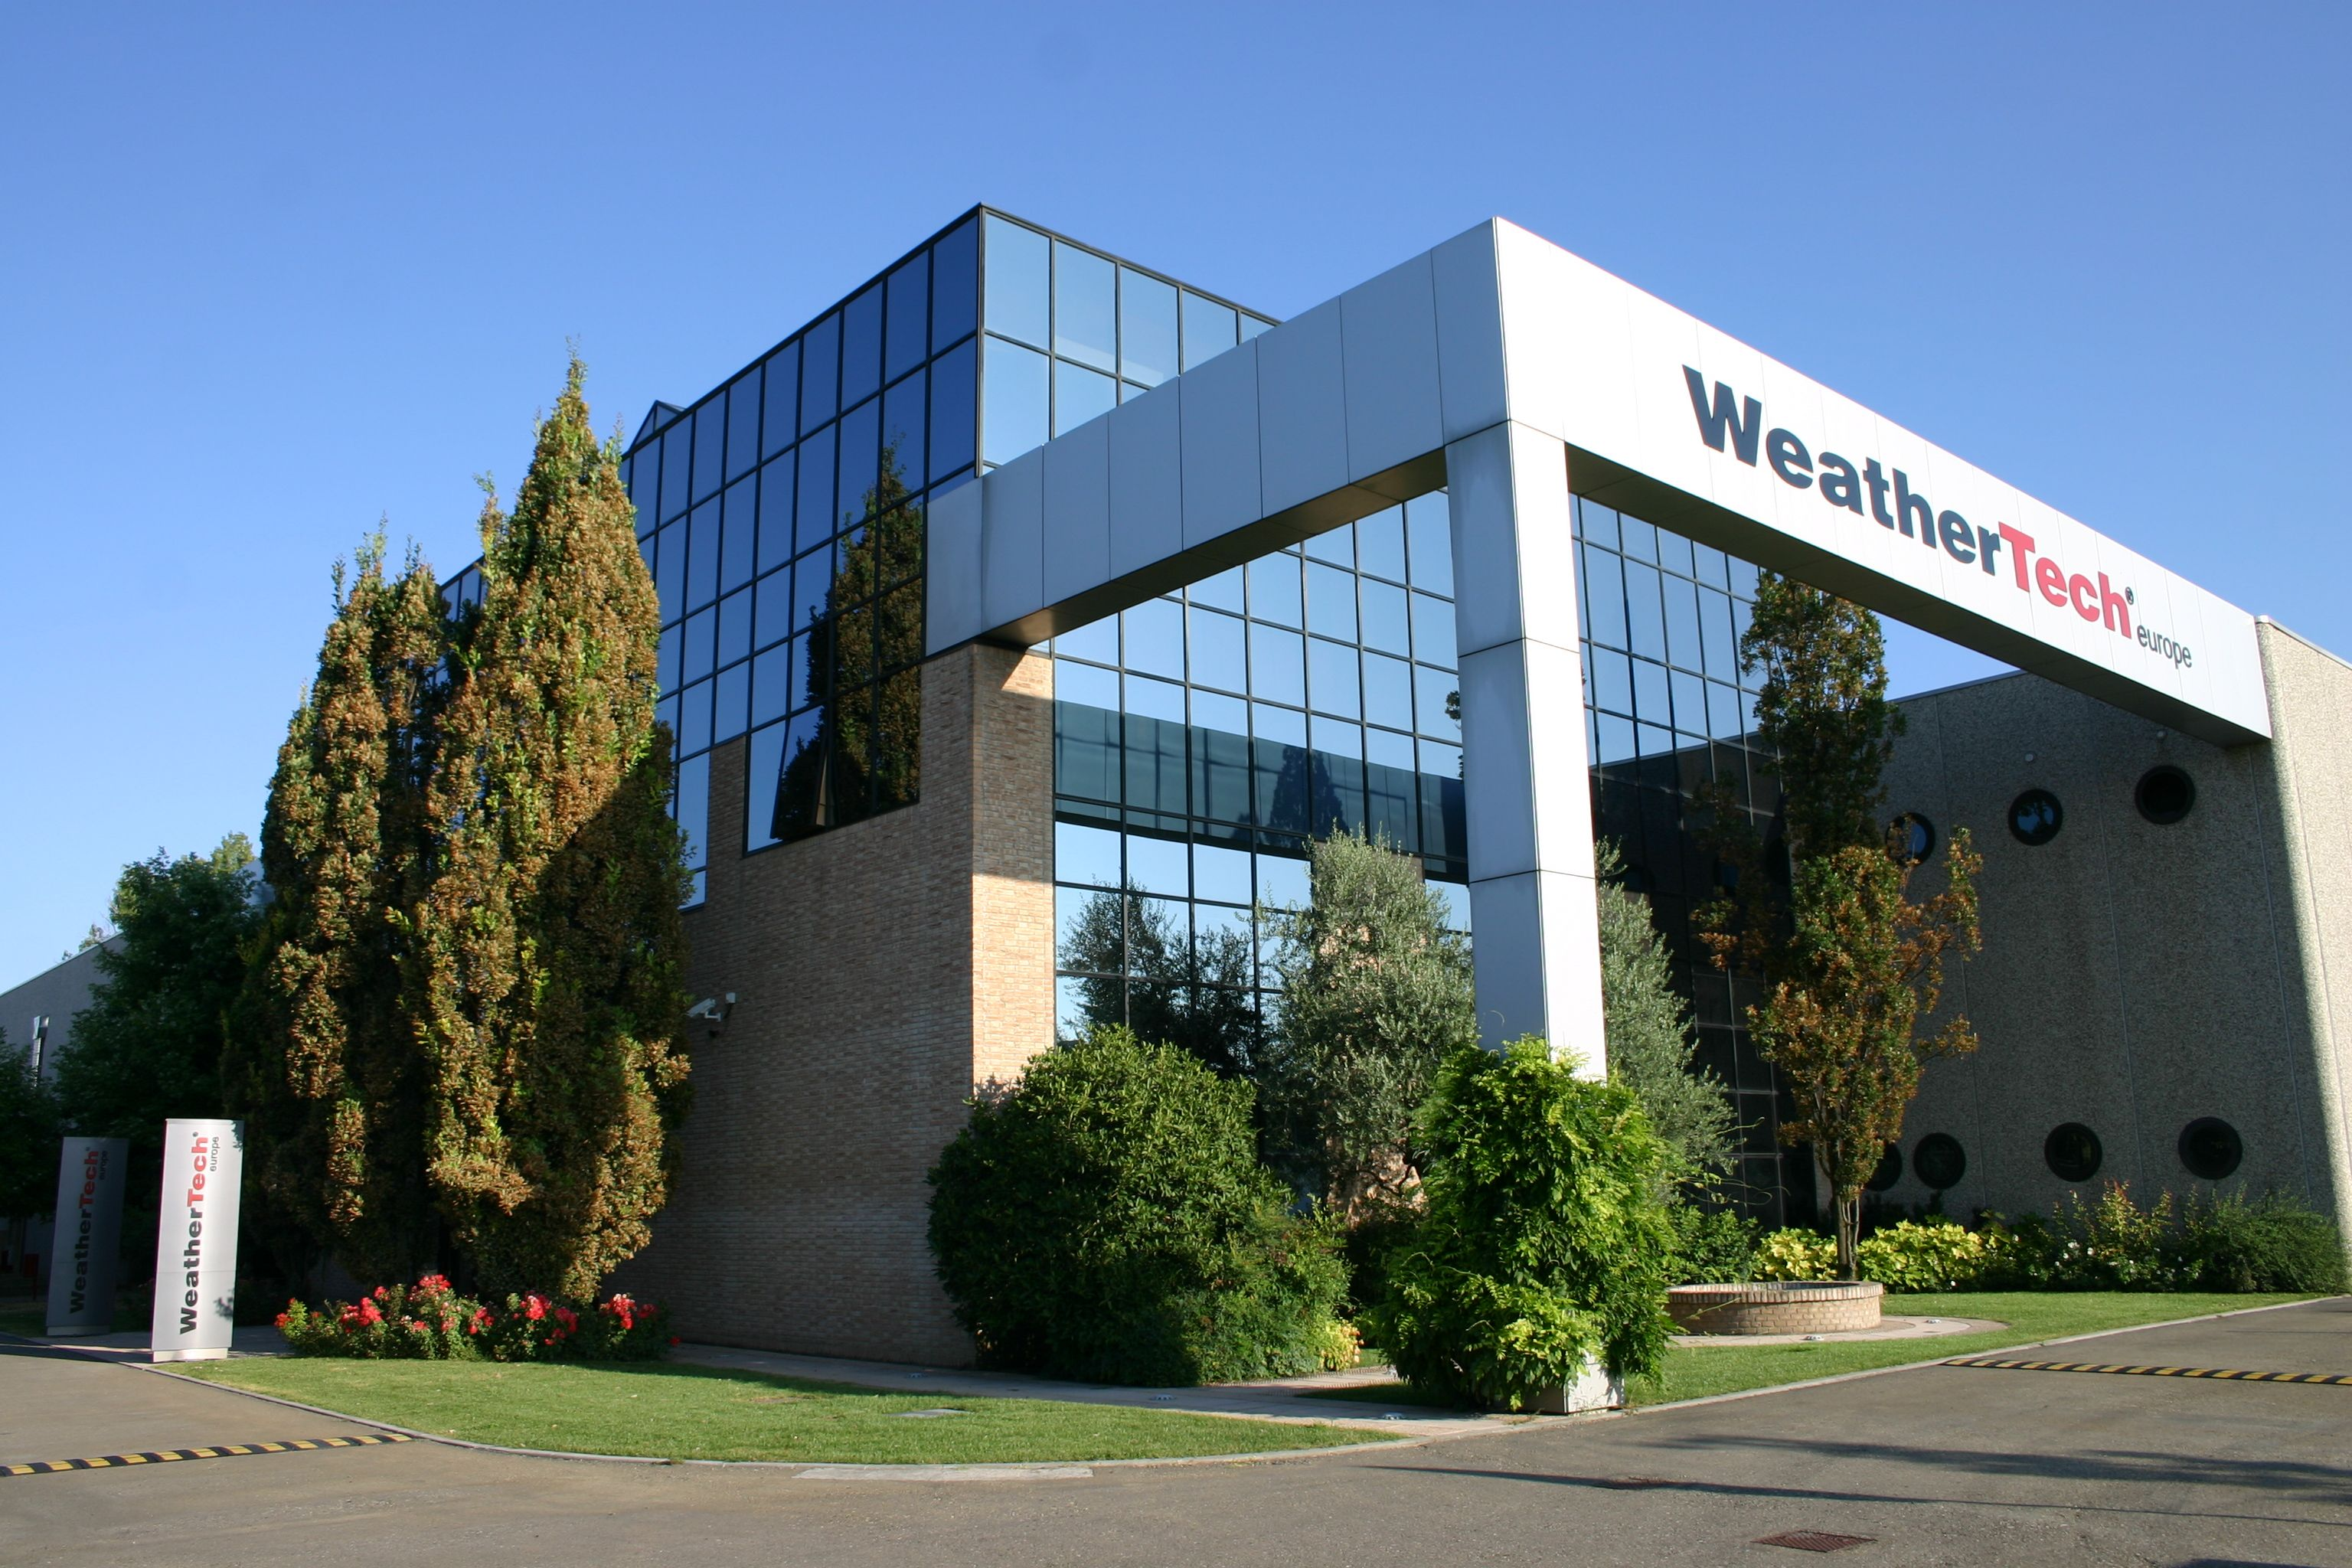 Weathertech floor mats europe - Weathertech Europe Factory Store Located In Parma Italy Http Www